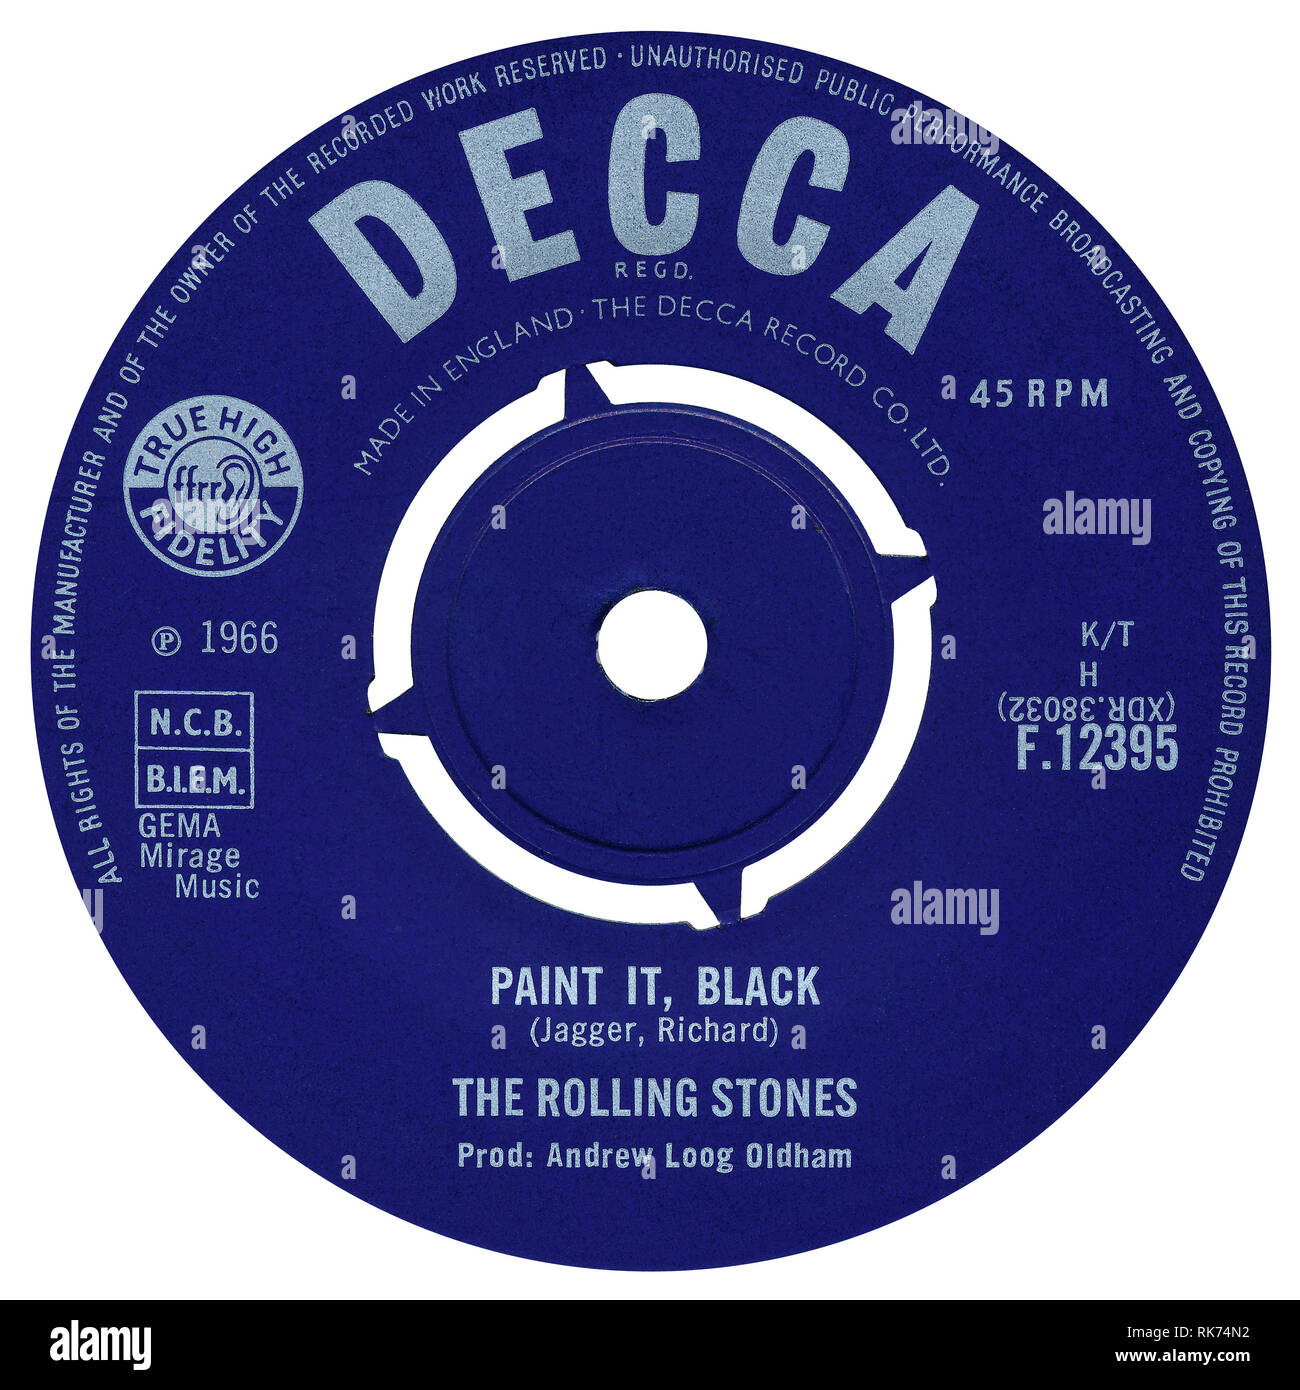 UK 45 rpm single of Paint It, Black by The Rolling Stones on the Decca label from 1966. Written by Mick Jagger and Keith Richard and produced by Andrew Loog Oldham. Stock Photo